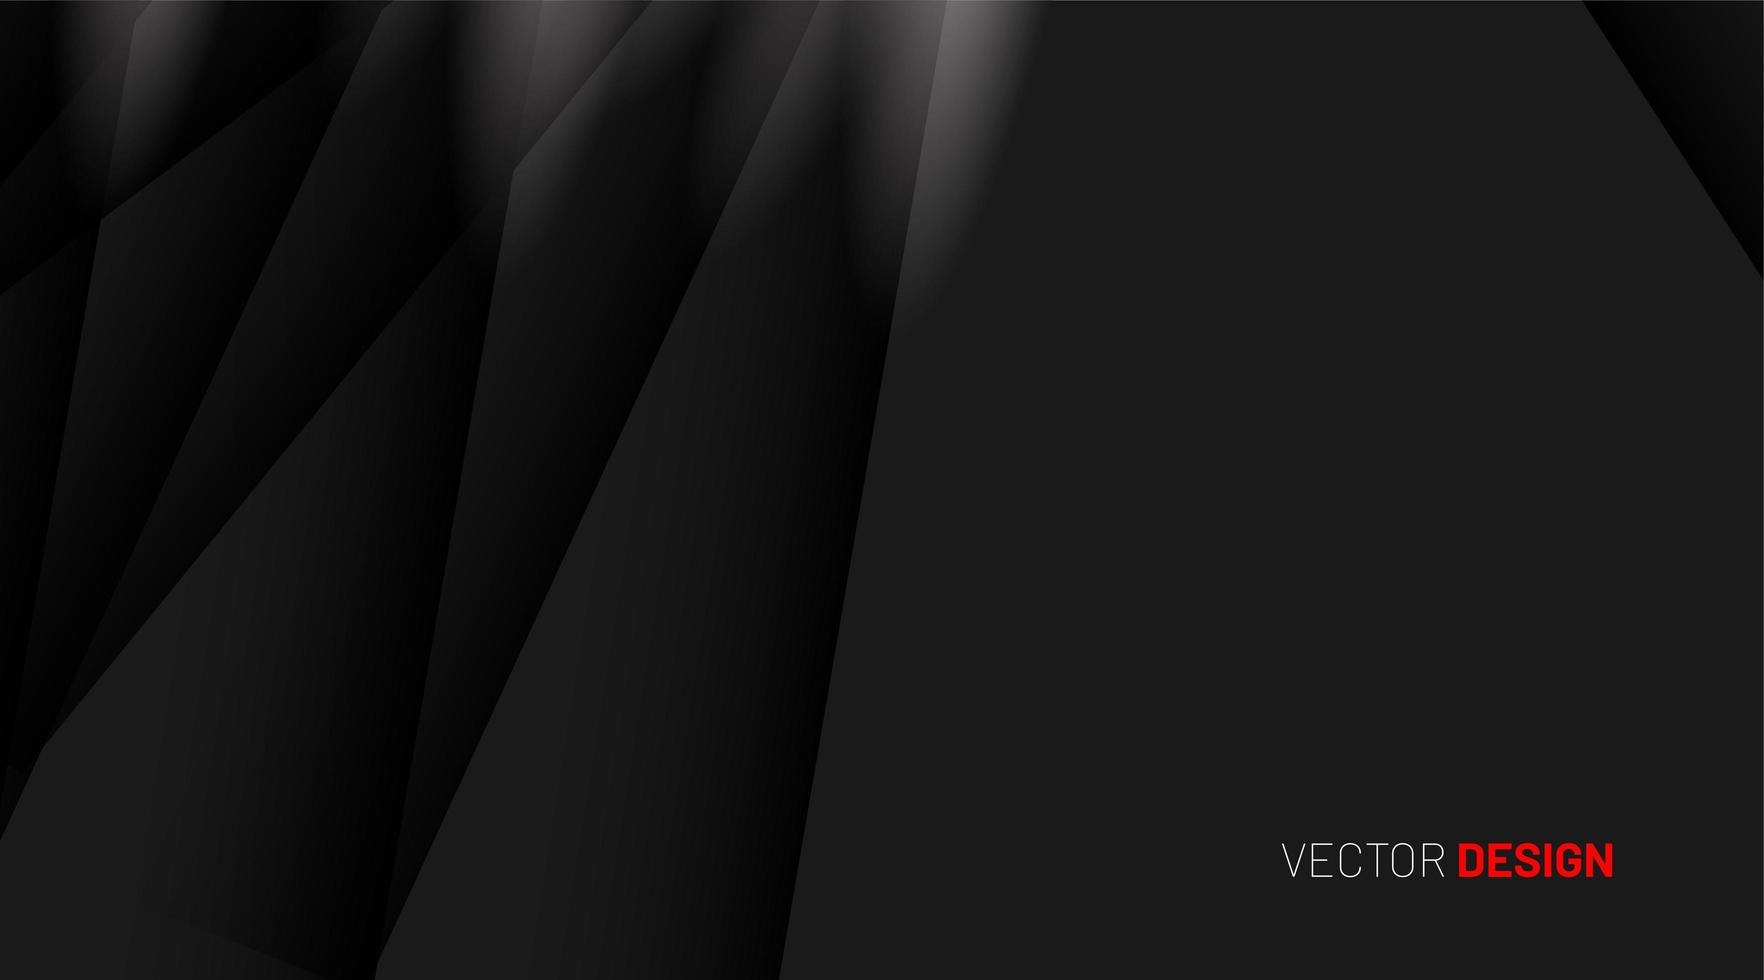 Overlapping shadow shapes 3D design technology background vector